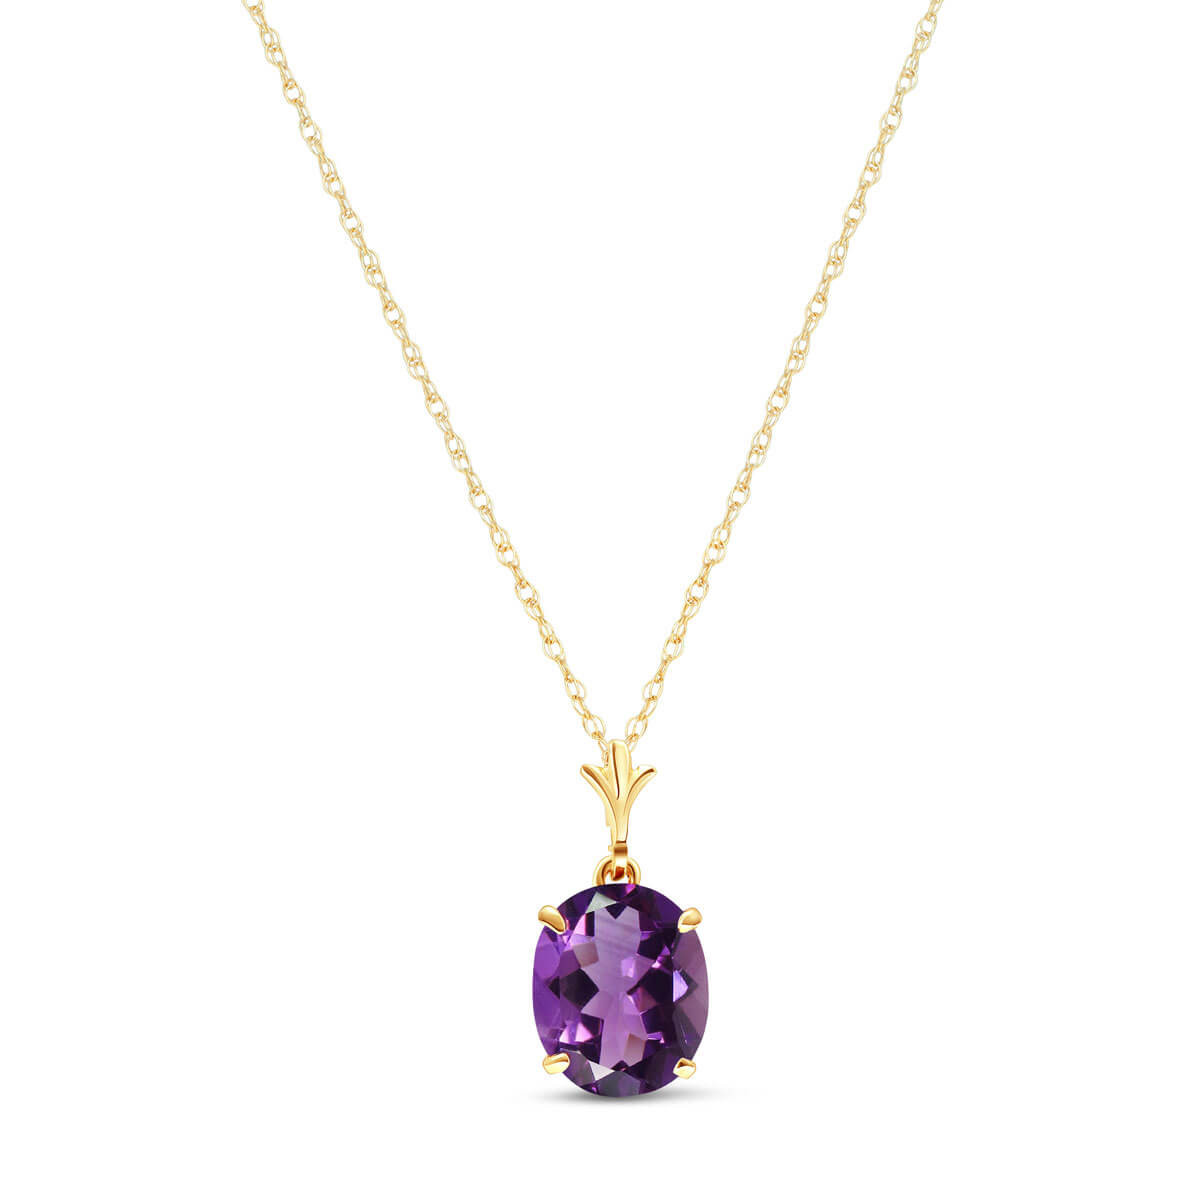 Amethyst Oval Pendant Necklace 3.12 ct in 9ct Gold